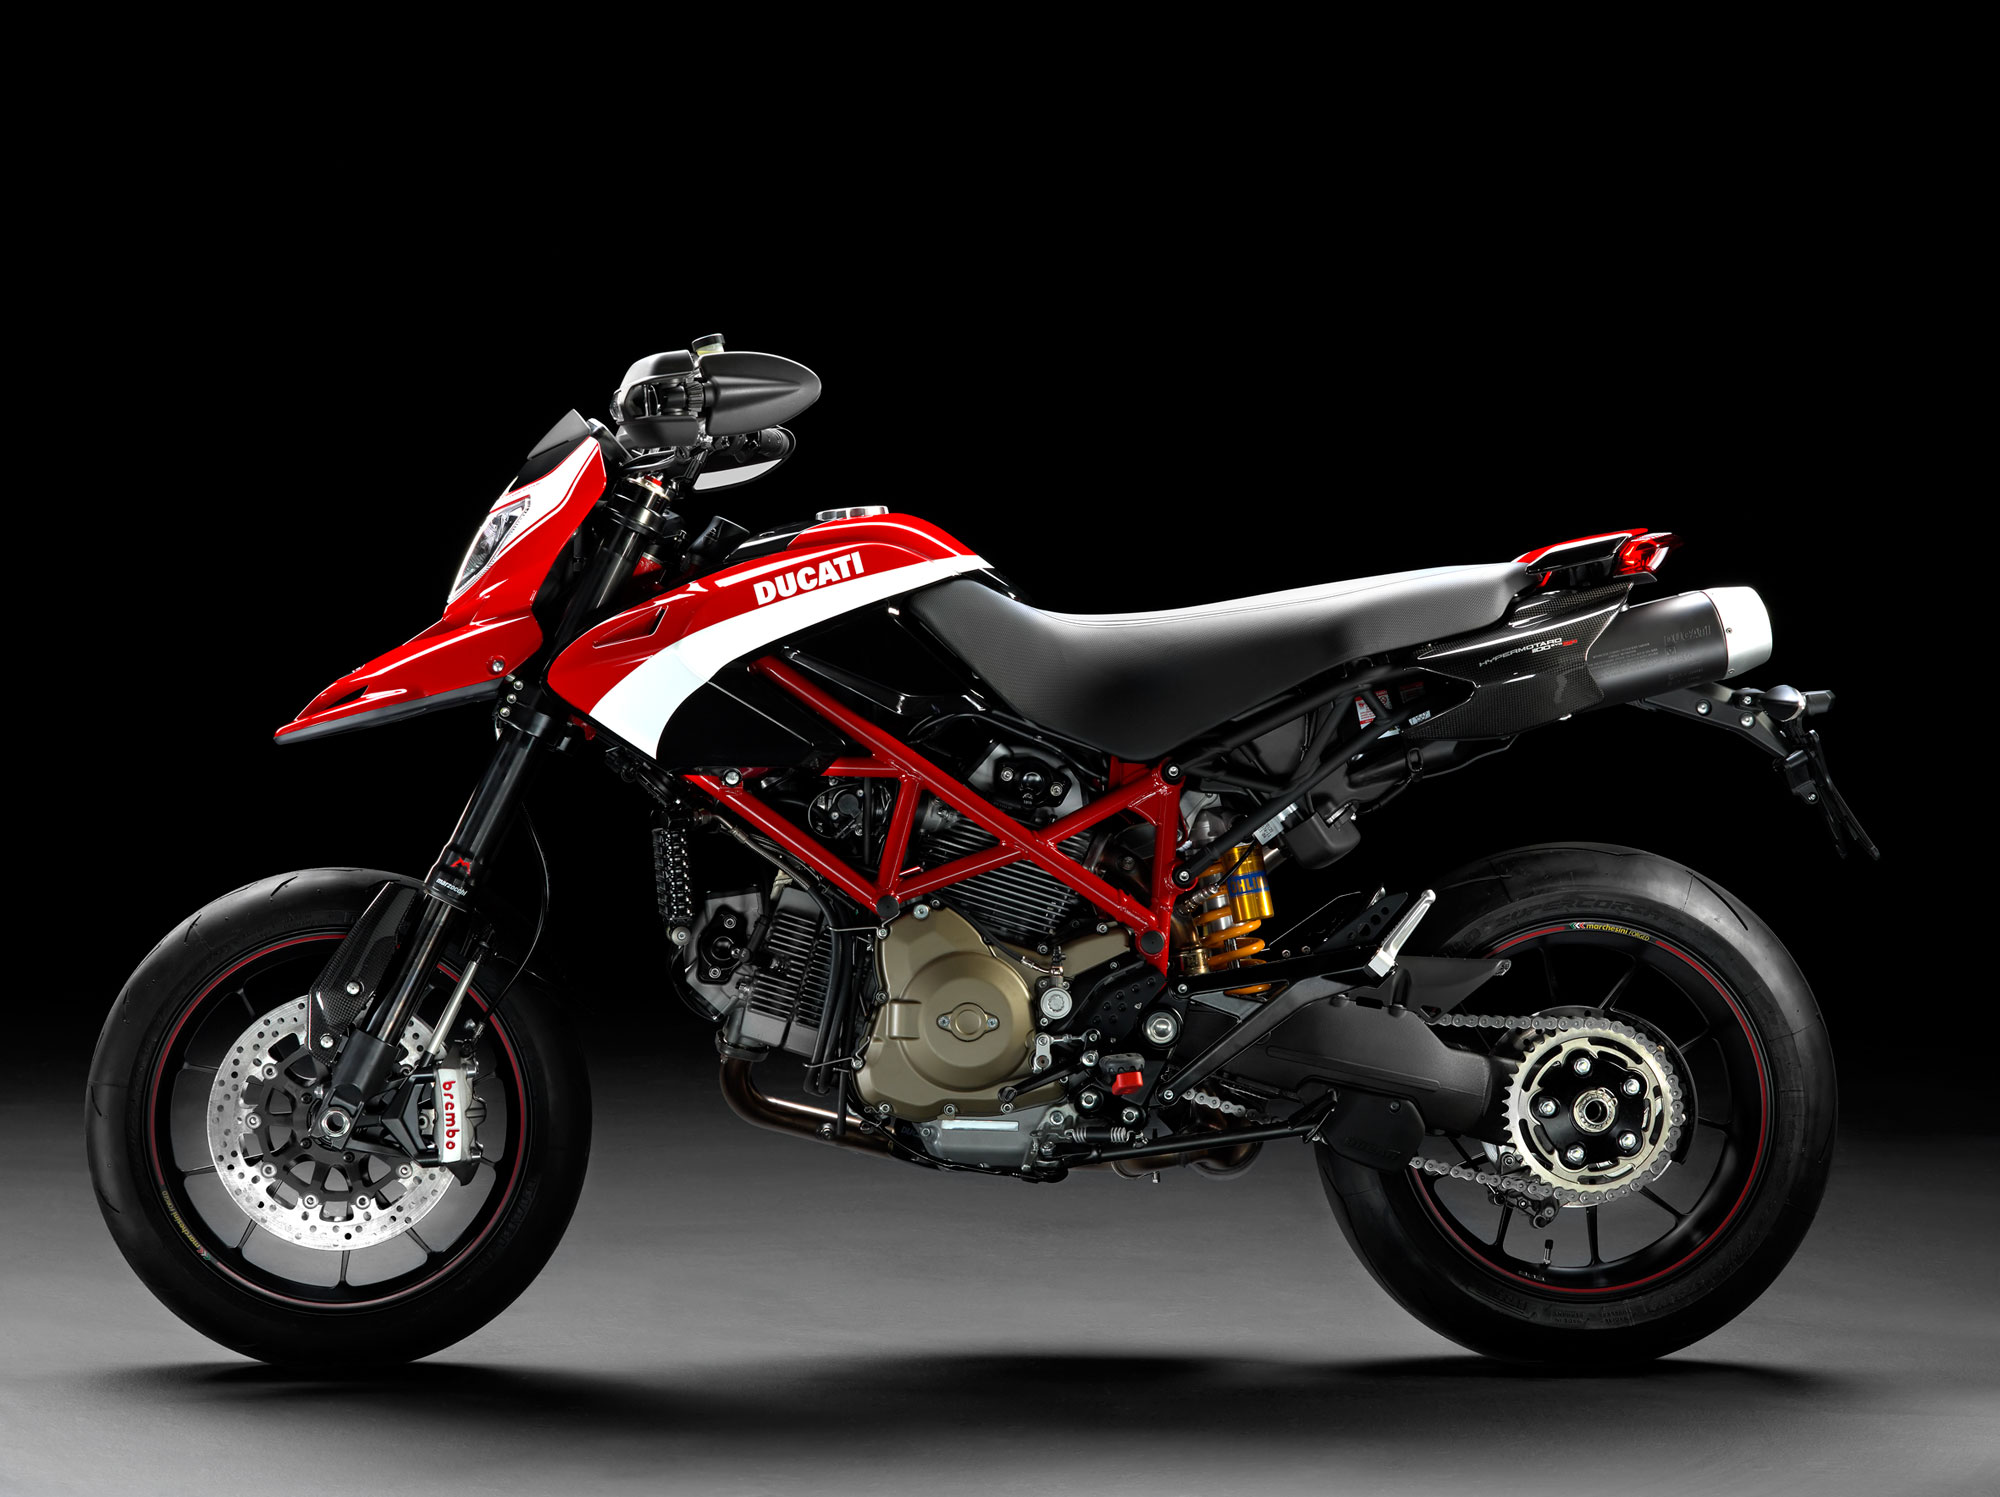 2012 ducati hypermotard 1100 evo sp corse edition review. Black Bedroom Furniture Sets. Home Design Ideas